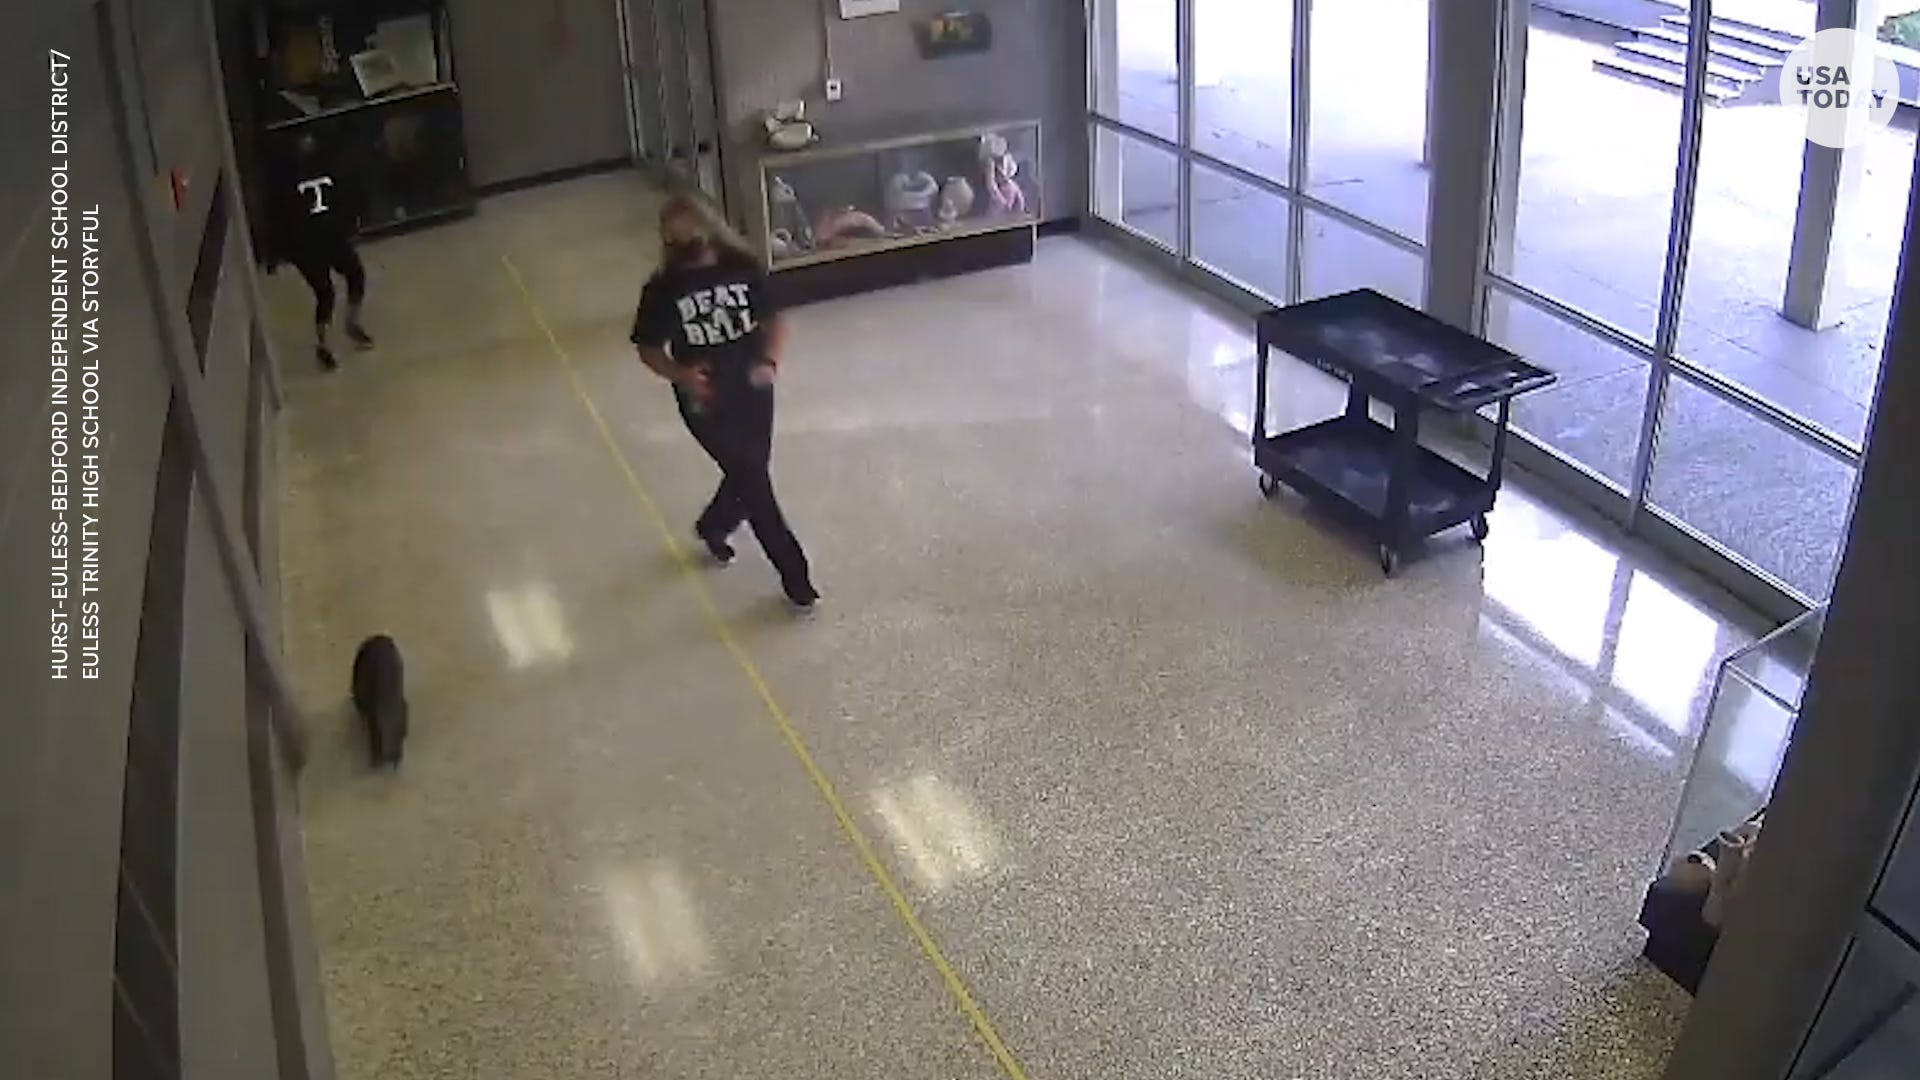 Wild raccoon leads Texas high school staff on wild chase through hallways